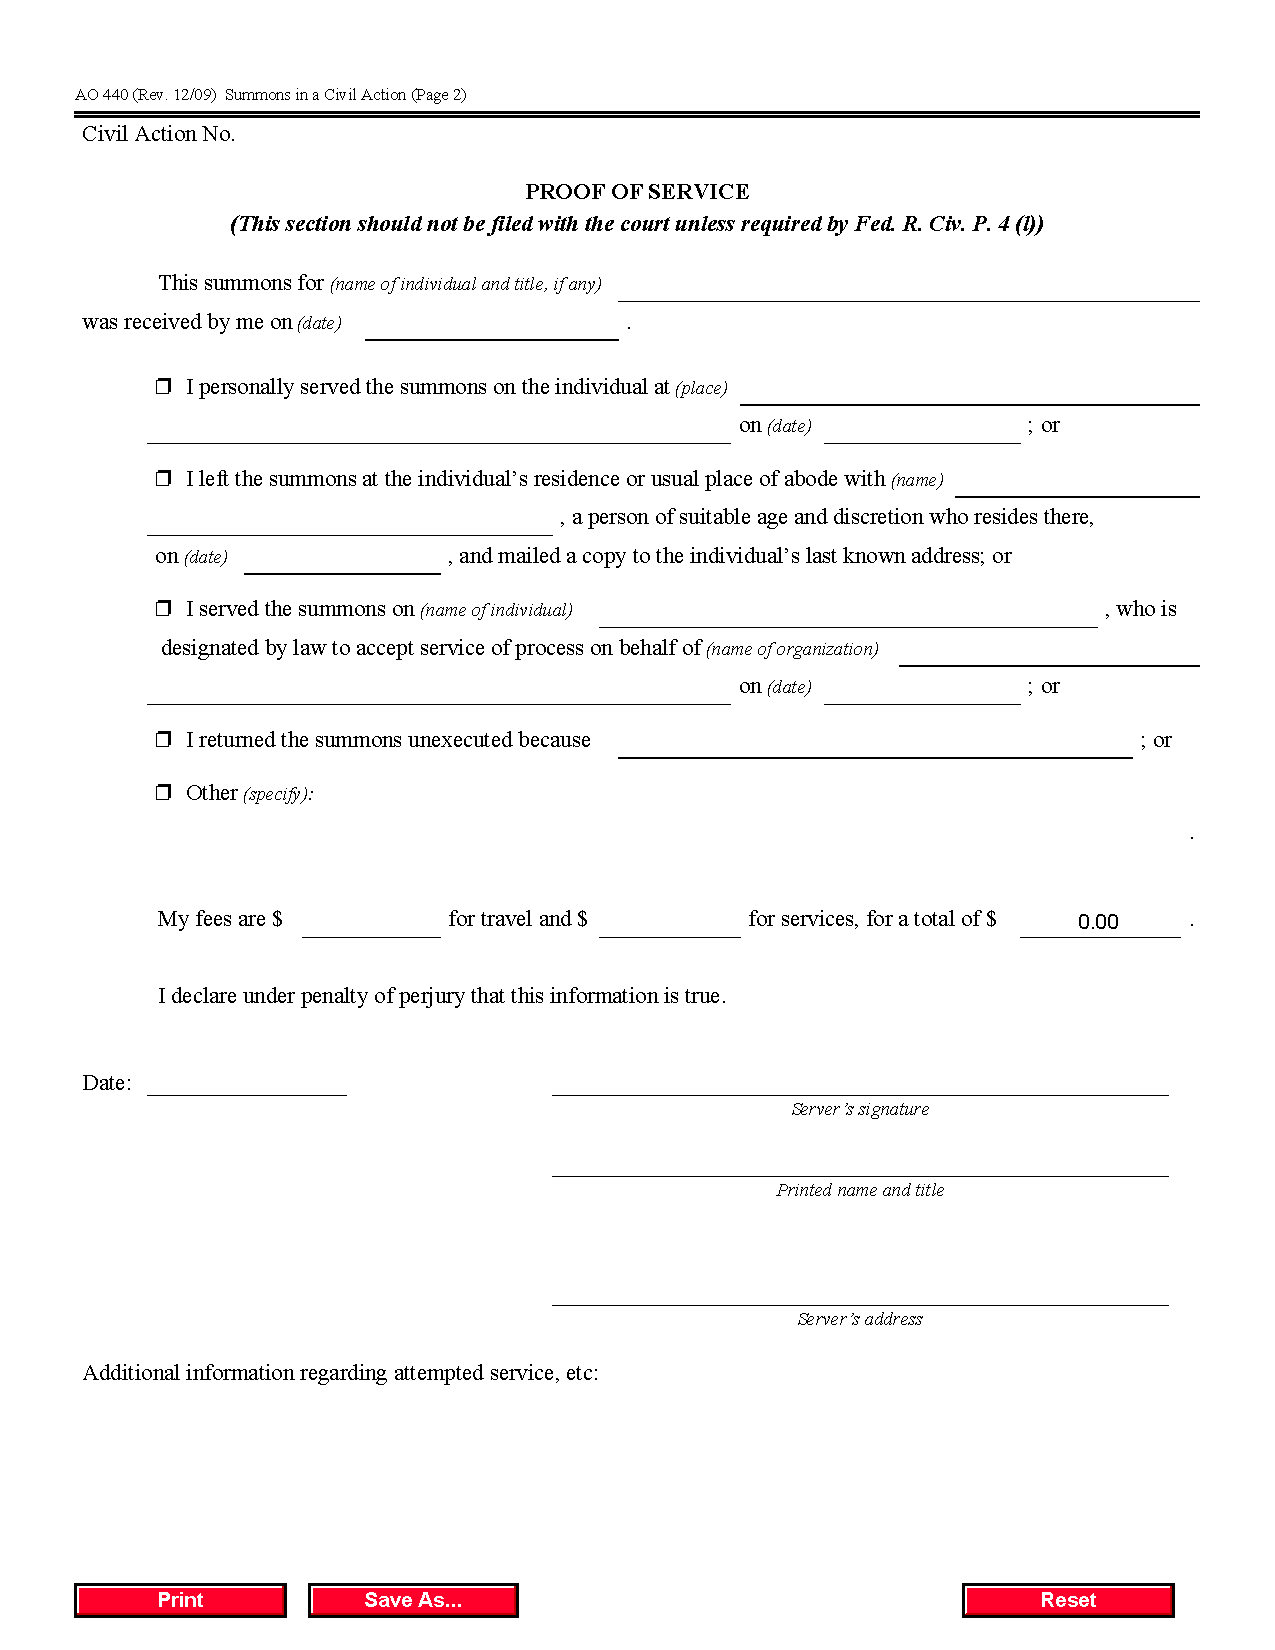 Form AO 440 Summons in a Civil Action